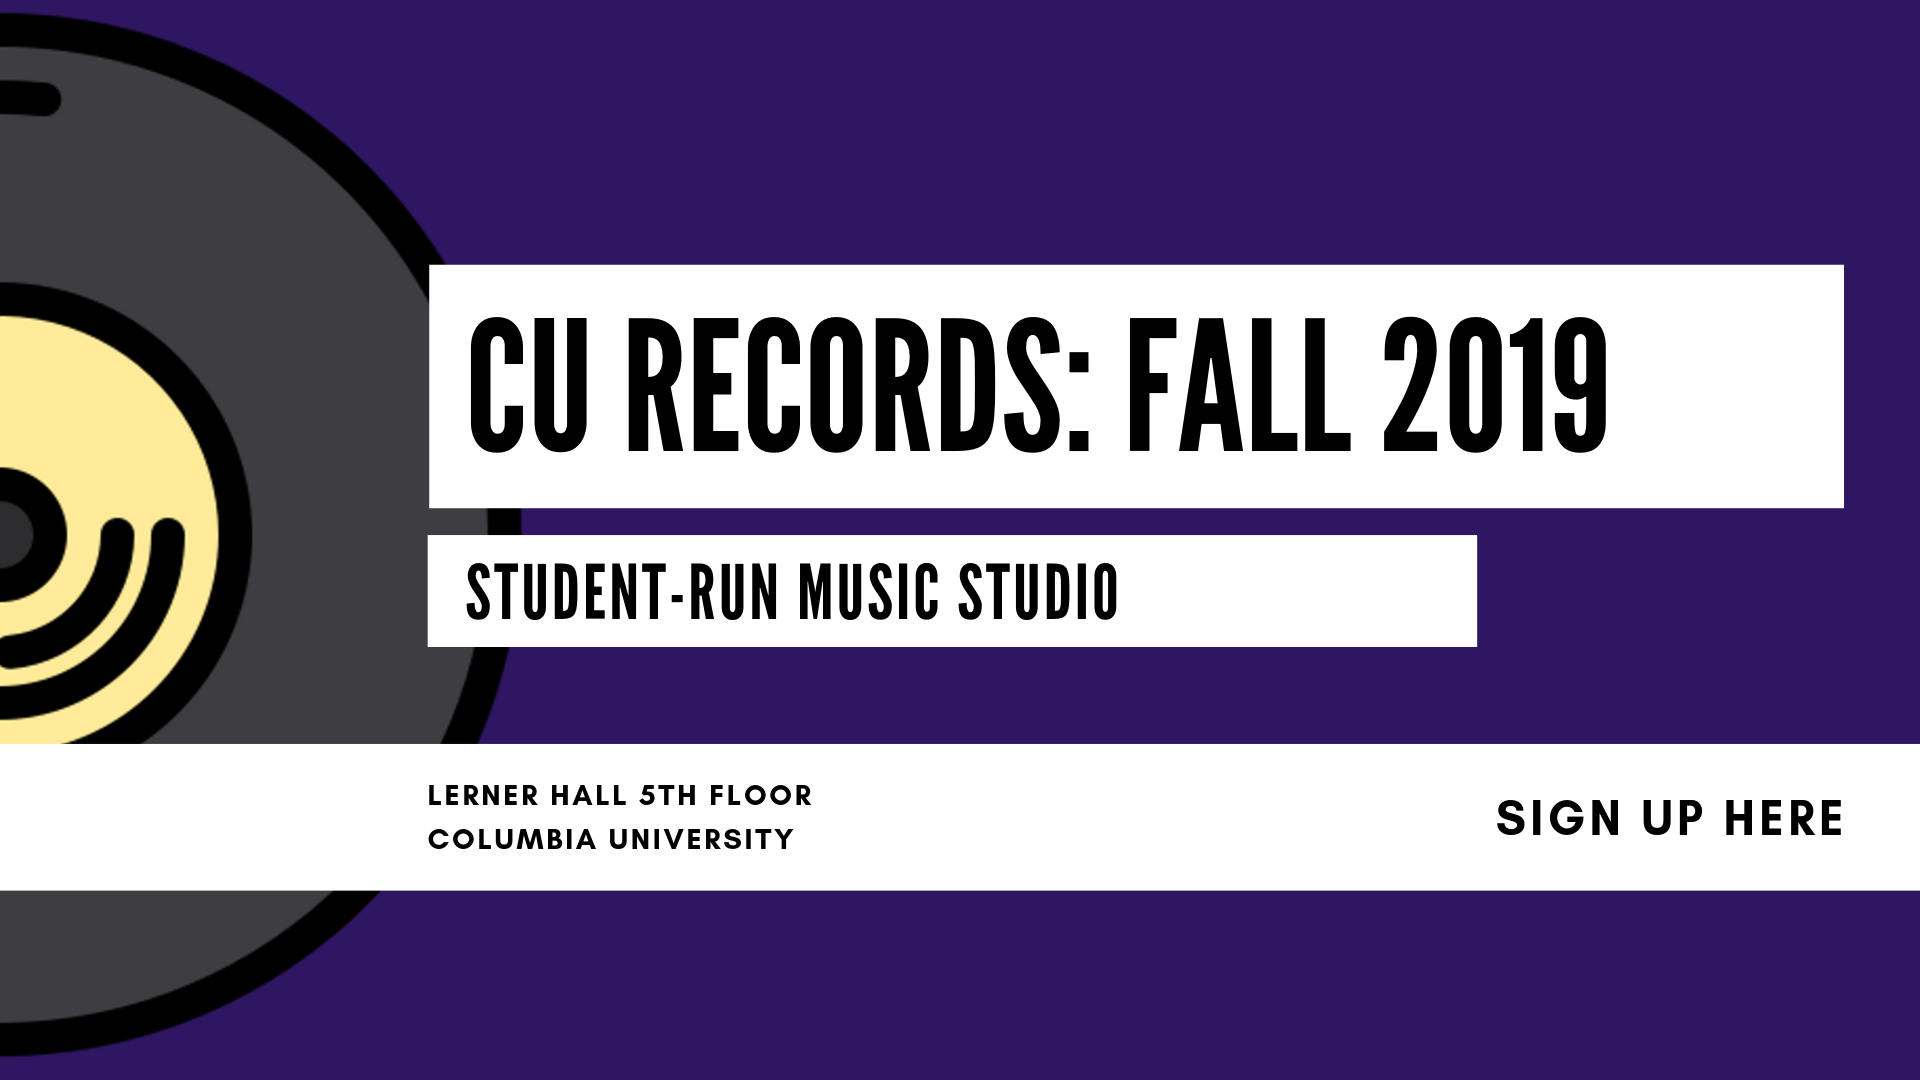 CU RECORDS_ FALL 2019.png